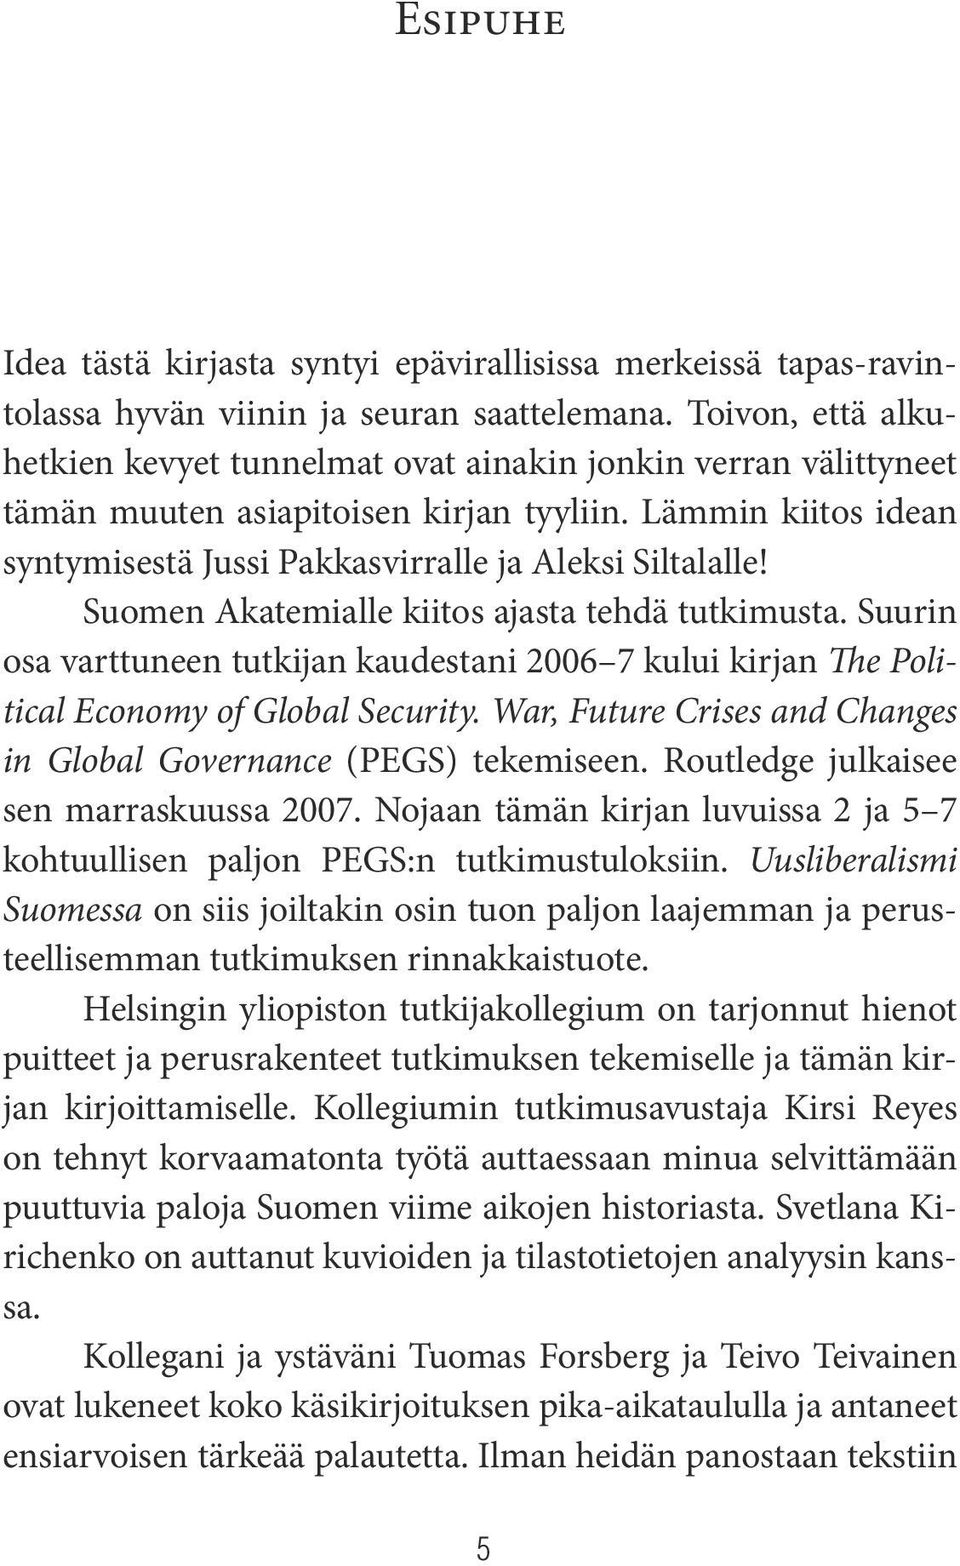 Suomen Akatemialle kiitos ajasta tehdä tutkimusta. Suurin osa varttuneen tutkijan kaudestani 2006 7 kului kirjan The Political Economy of Global Security.